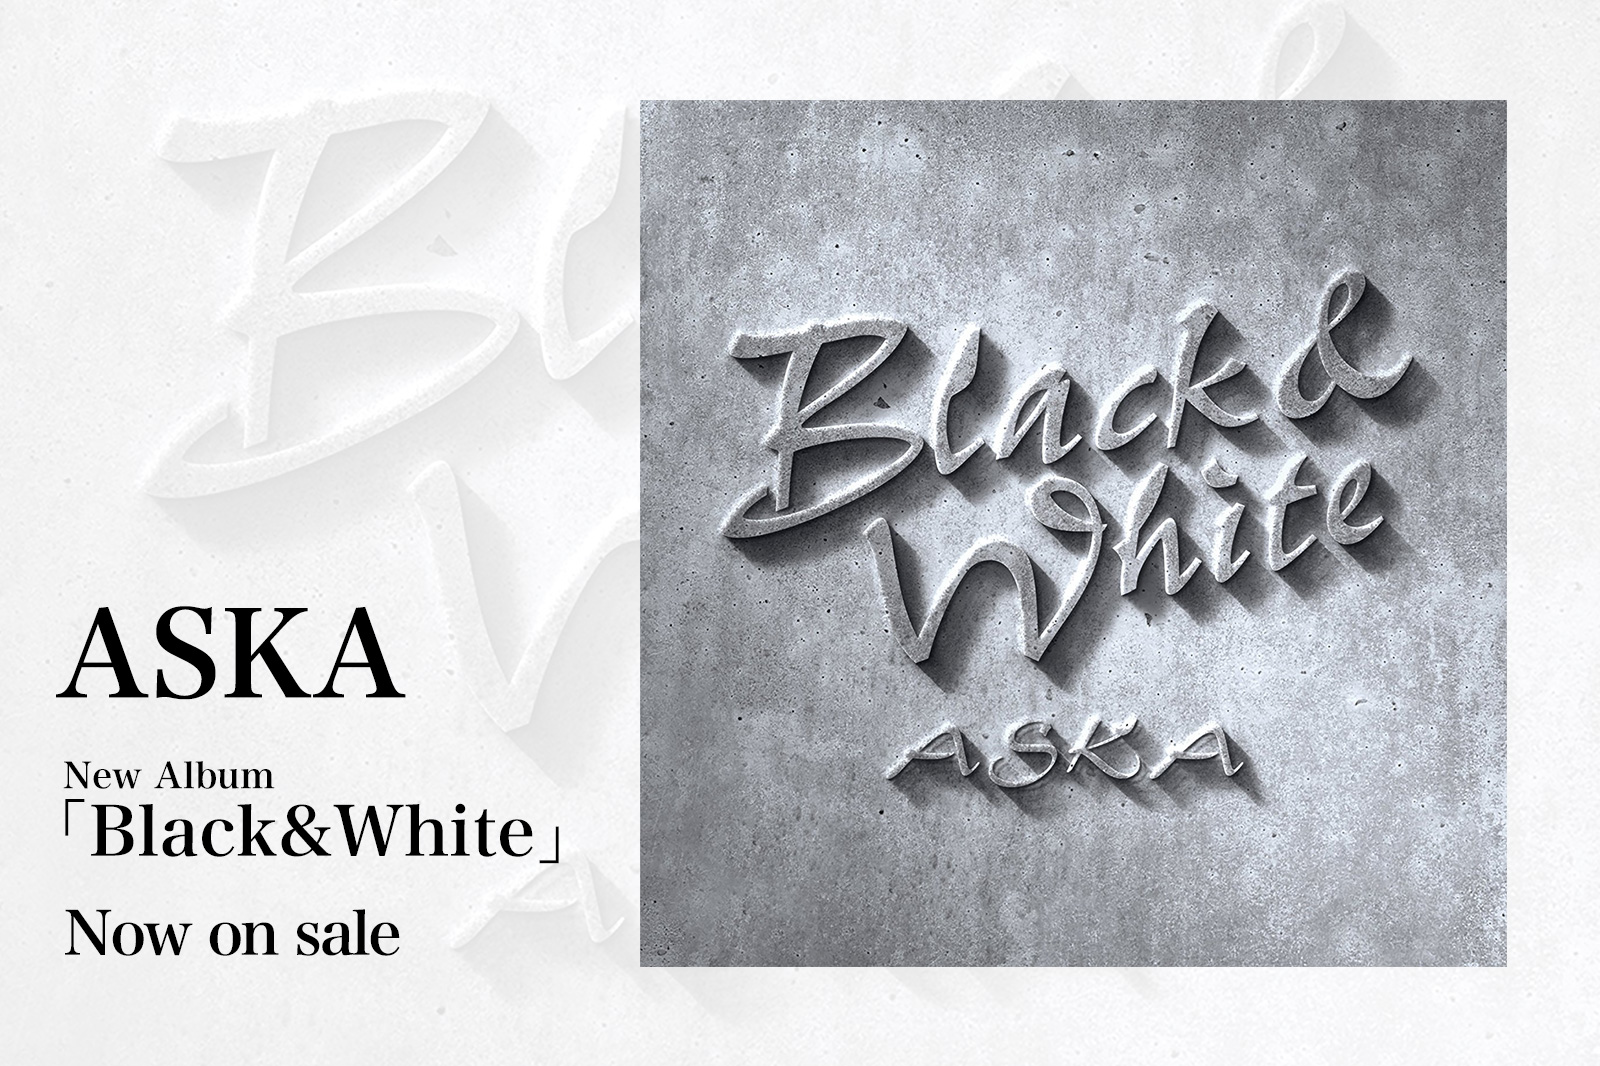 ASKA New Album「Black&White」